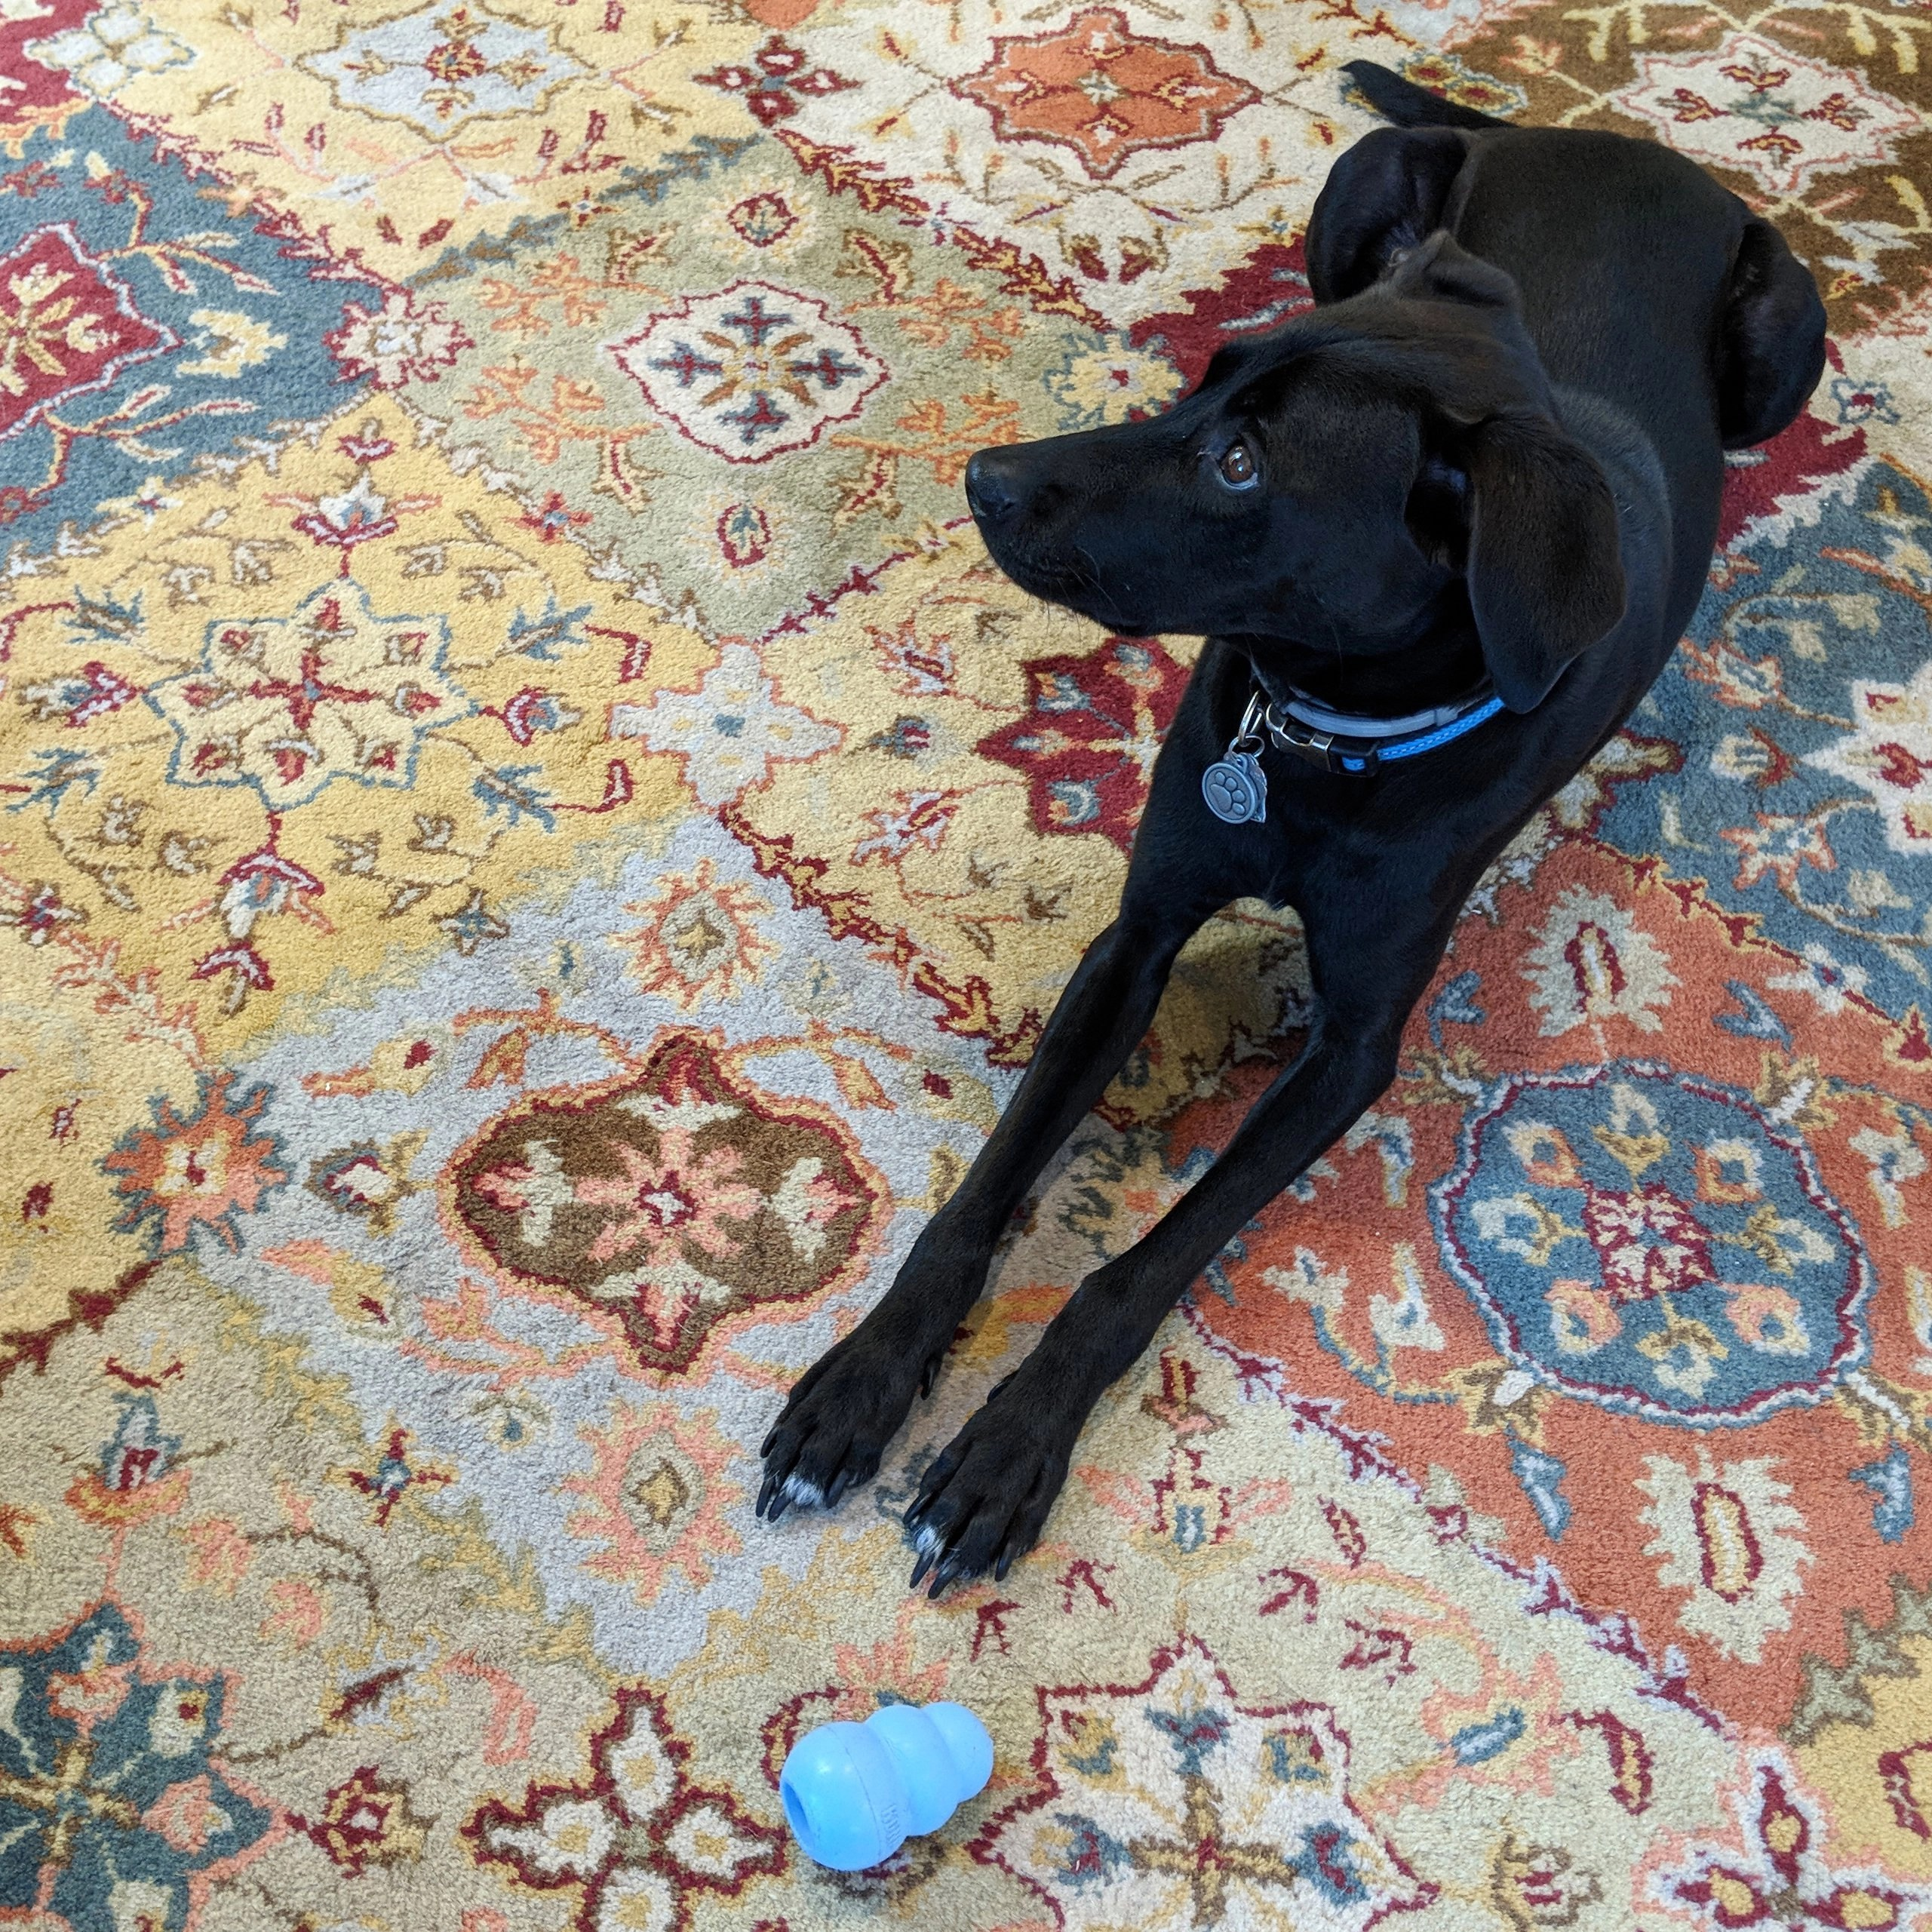 Odin relaxes on a plush rug with his Kong toy